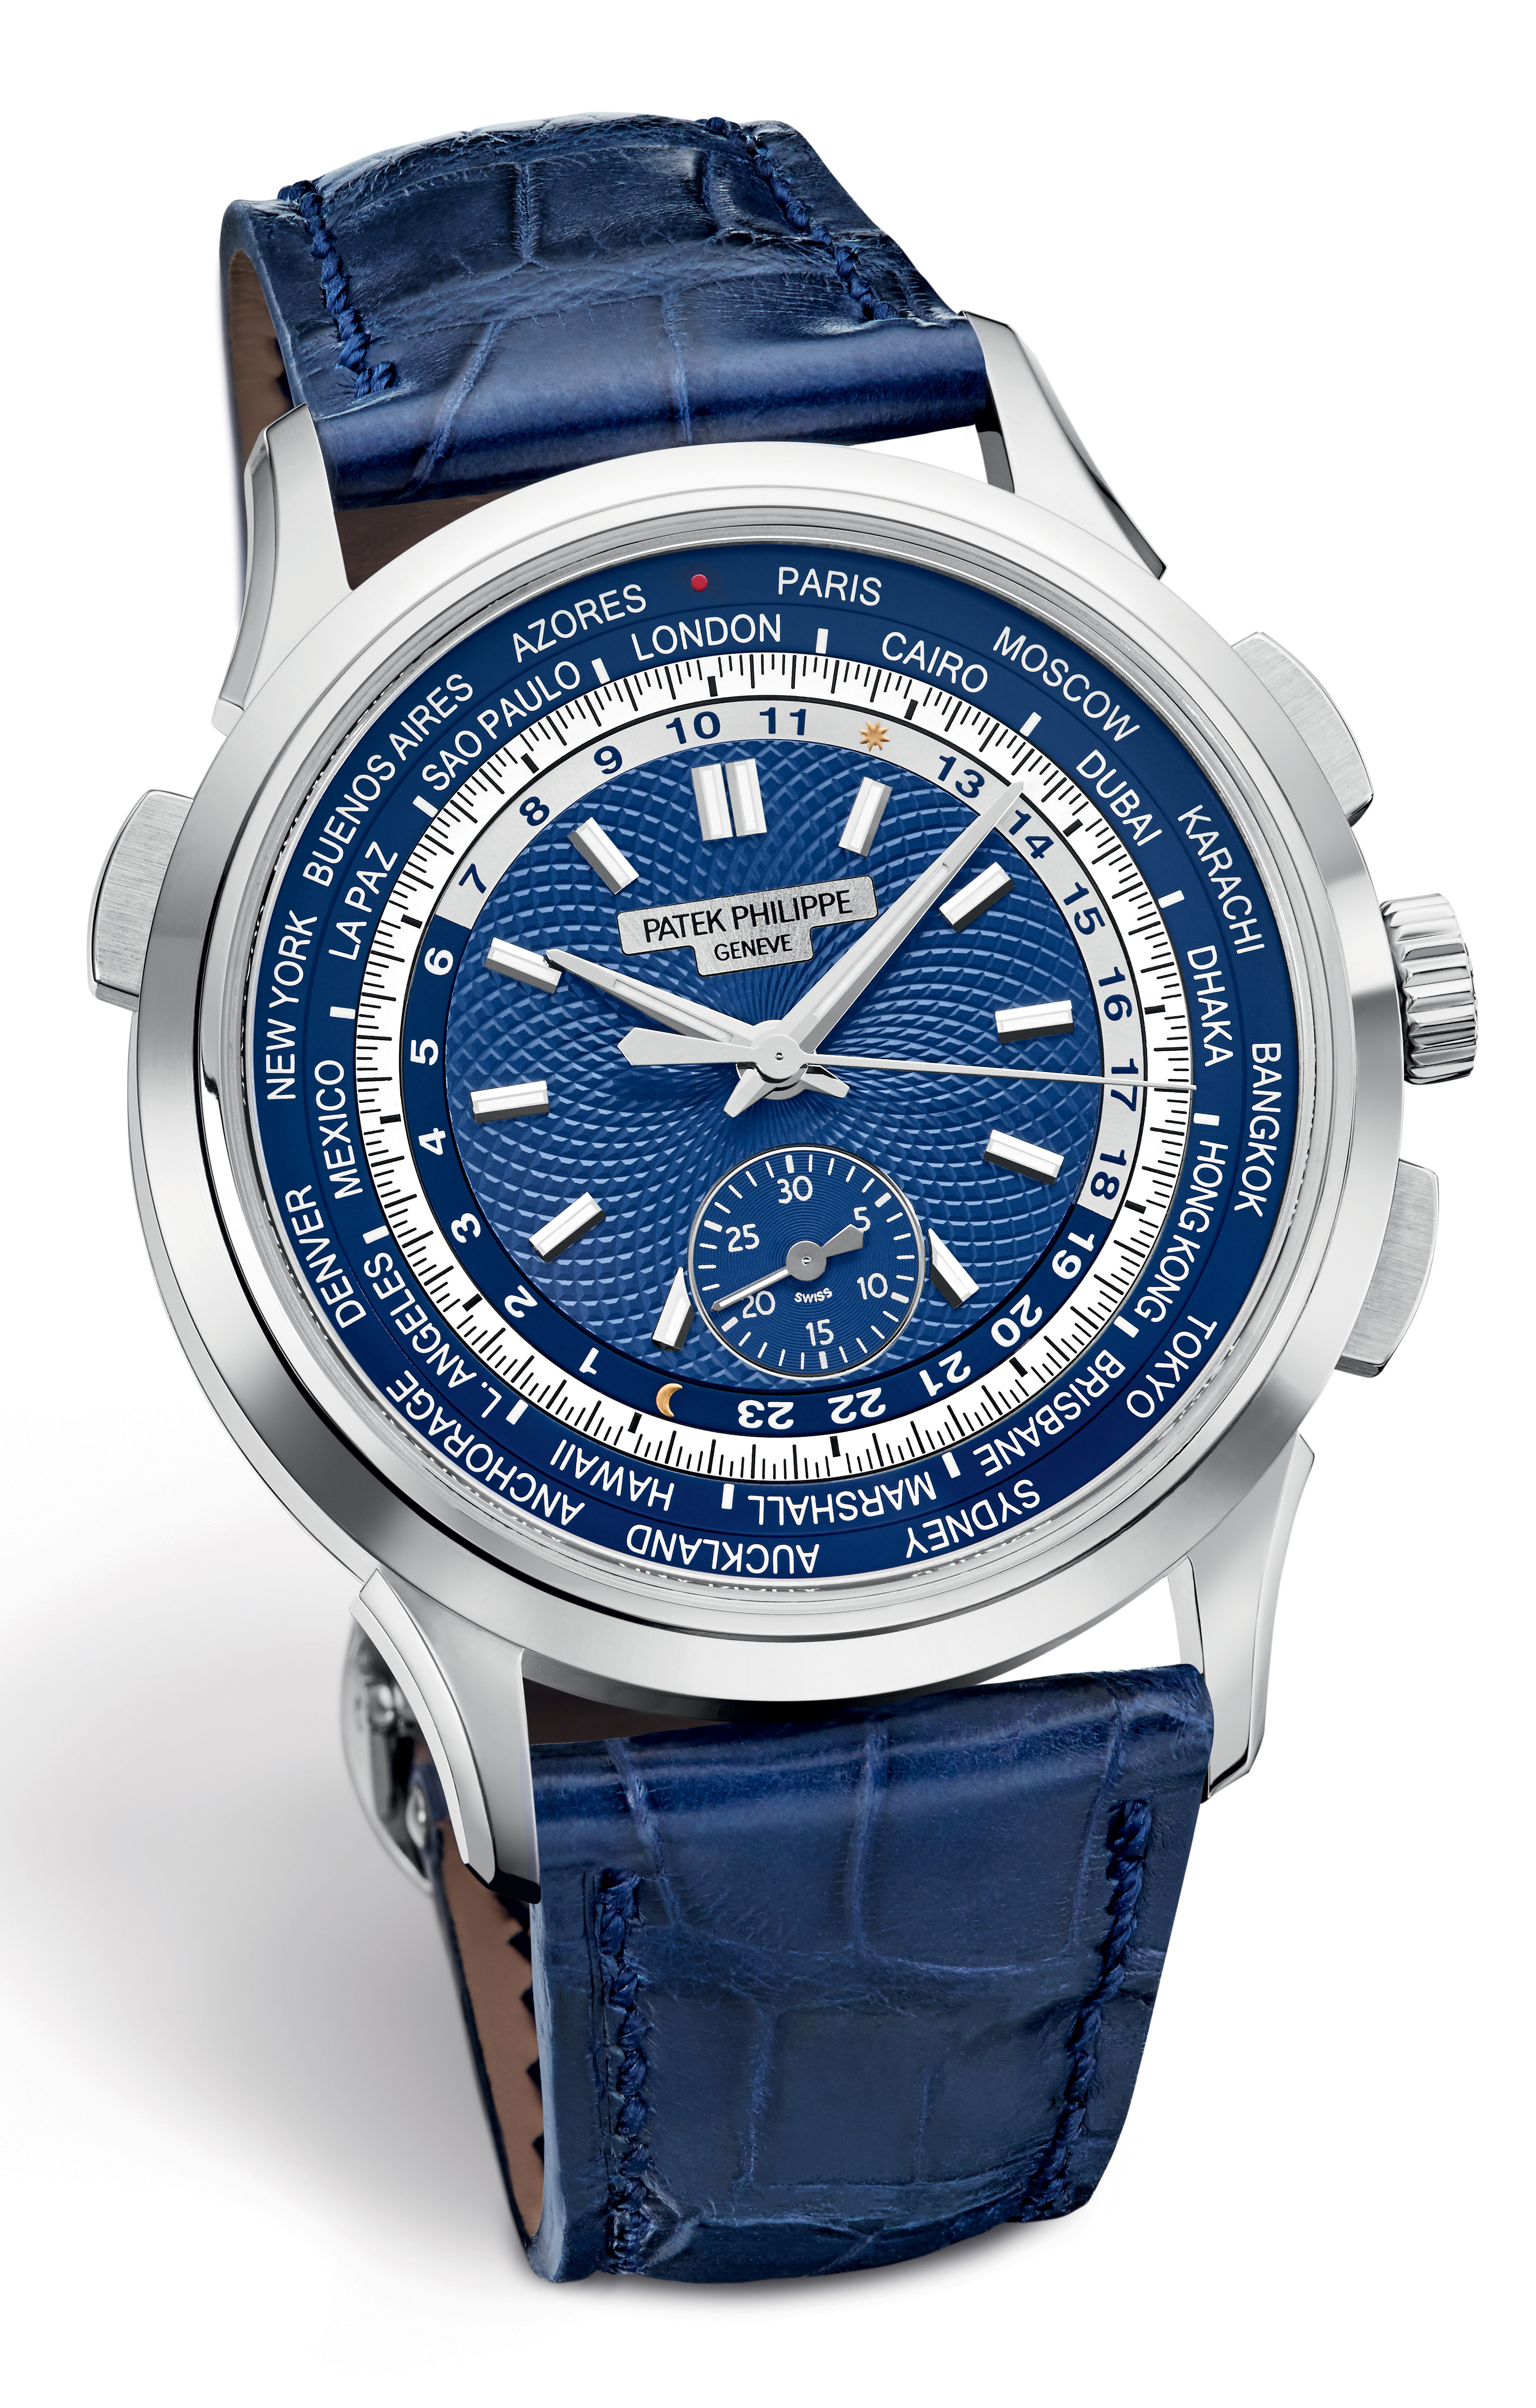 Baselworld 2016: Patek Philippe Live Report and Collection Preview Video